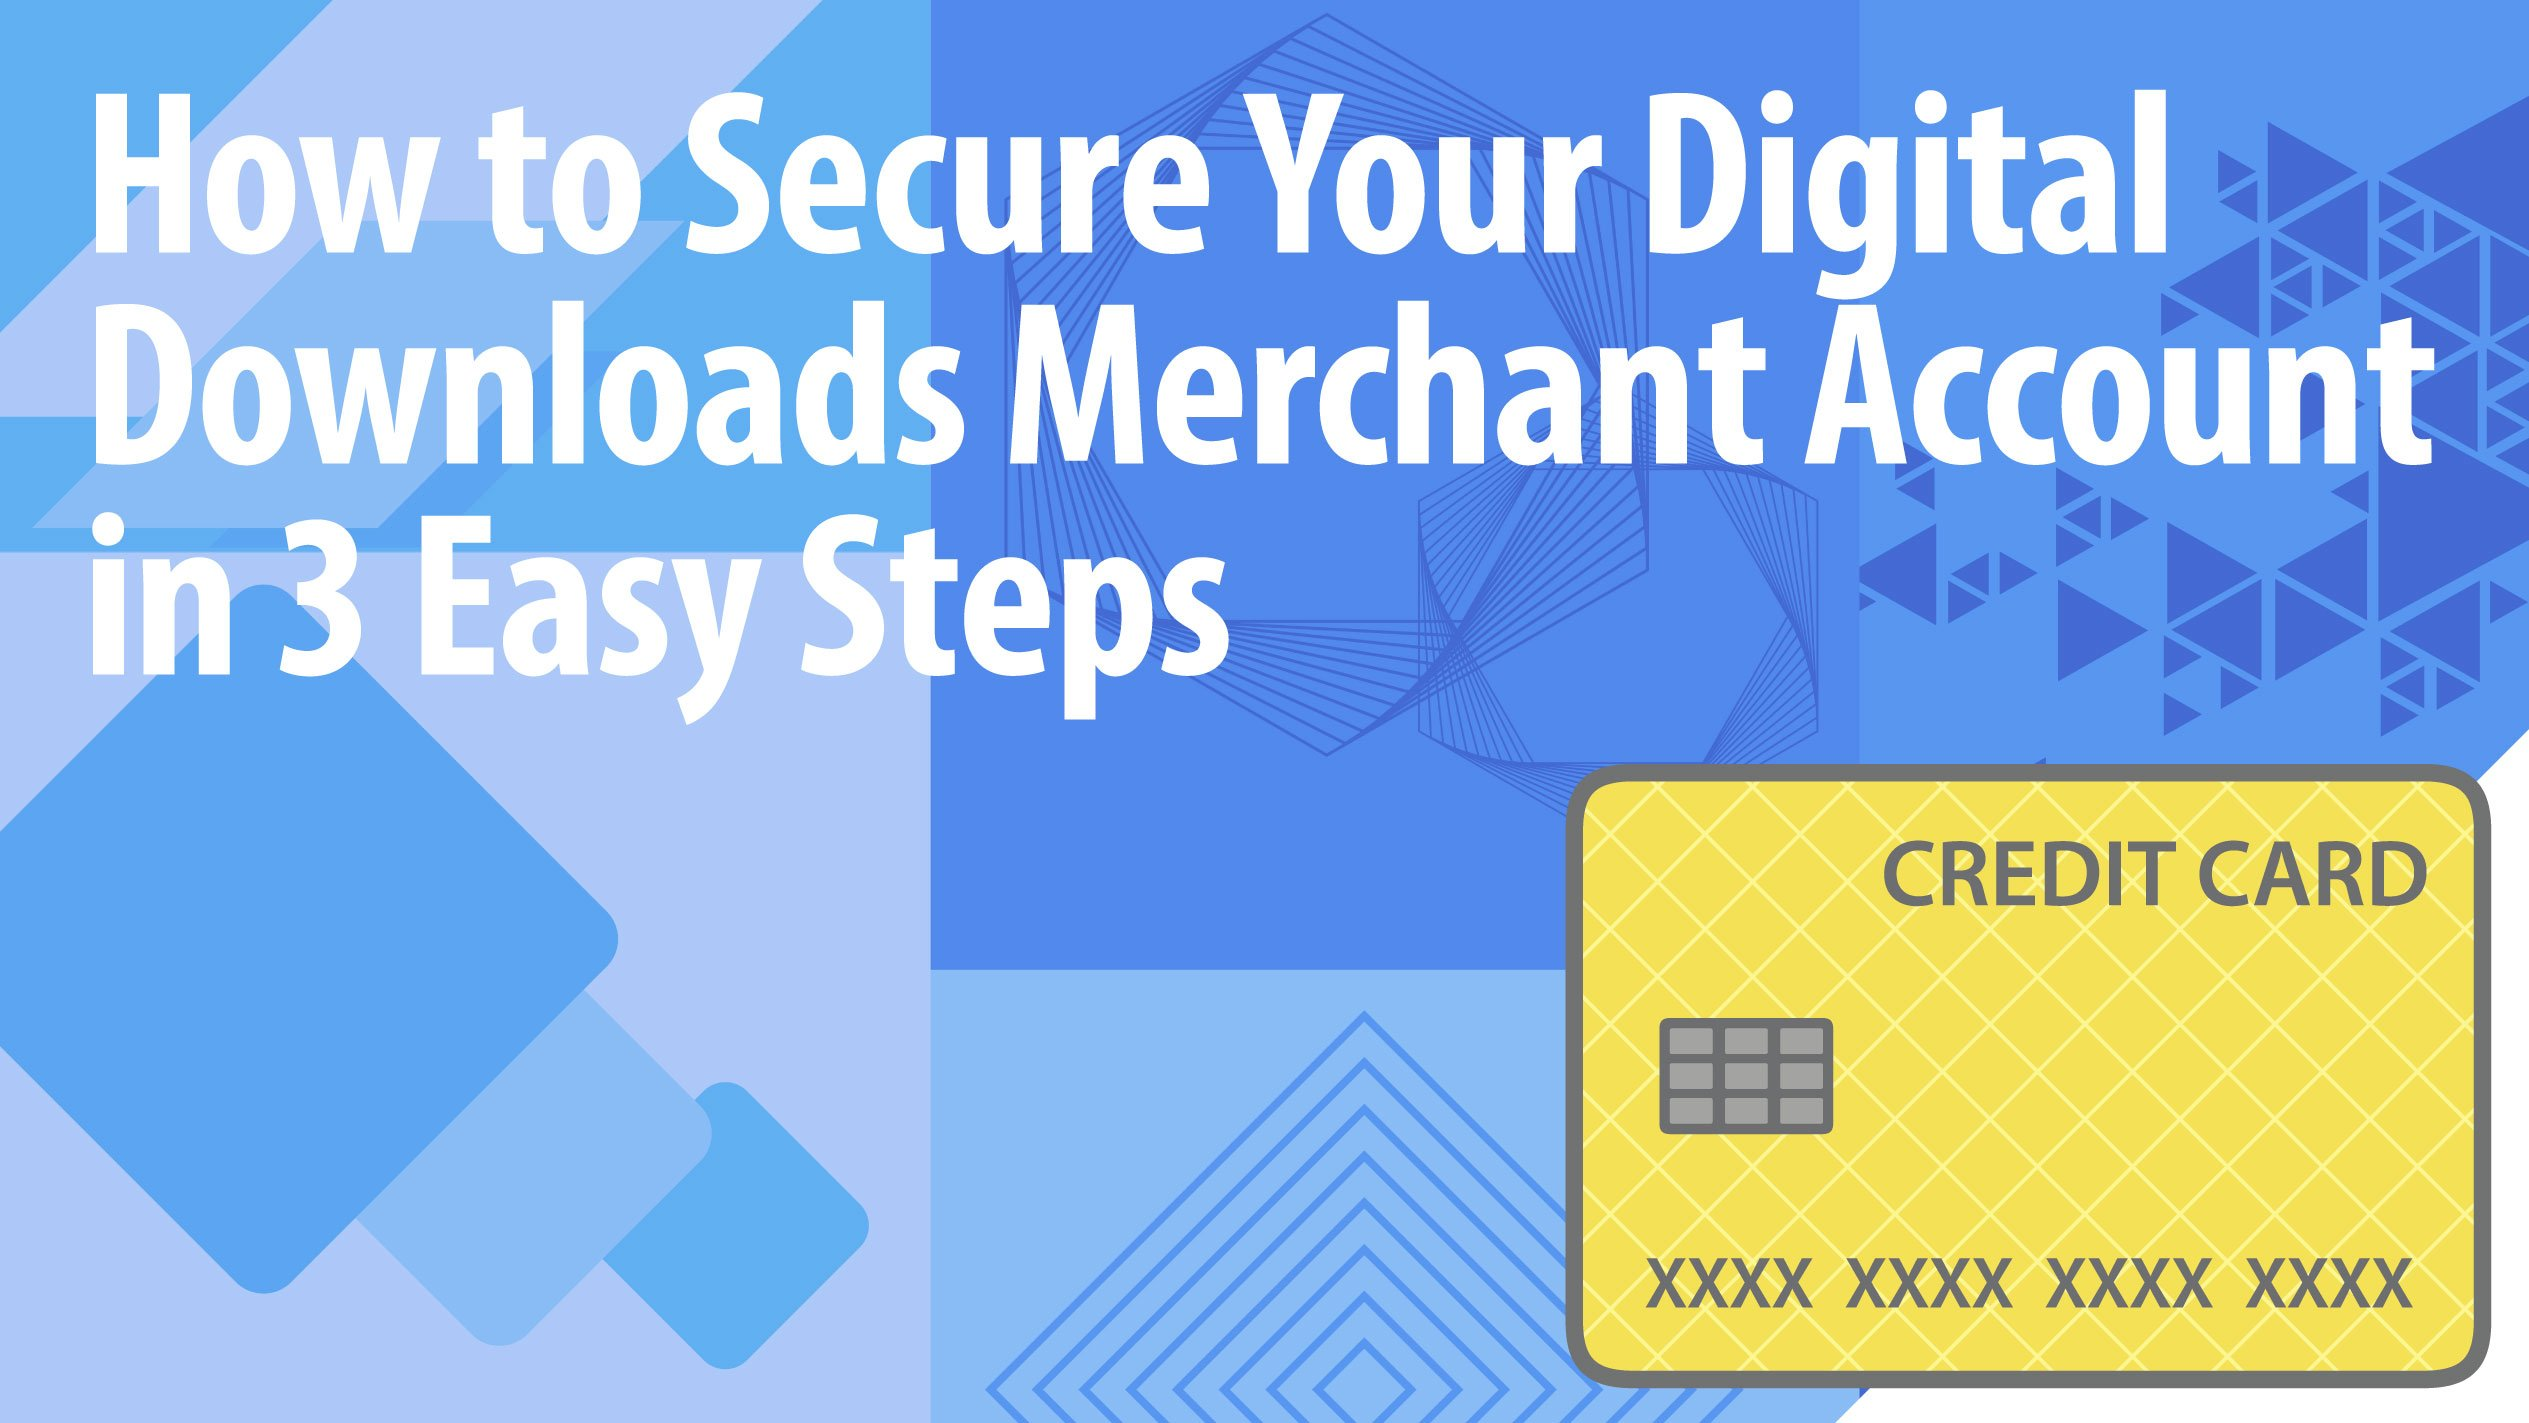 How to Secure Your Digital Downloads Merchant Account in 3 Easy Steps